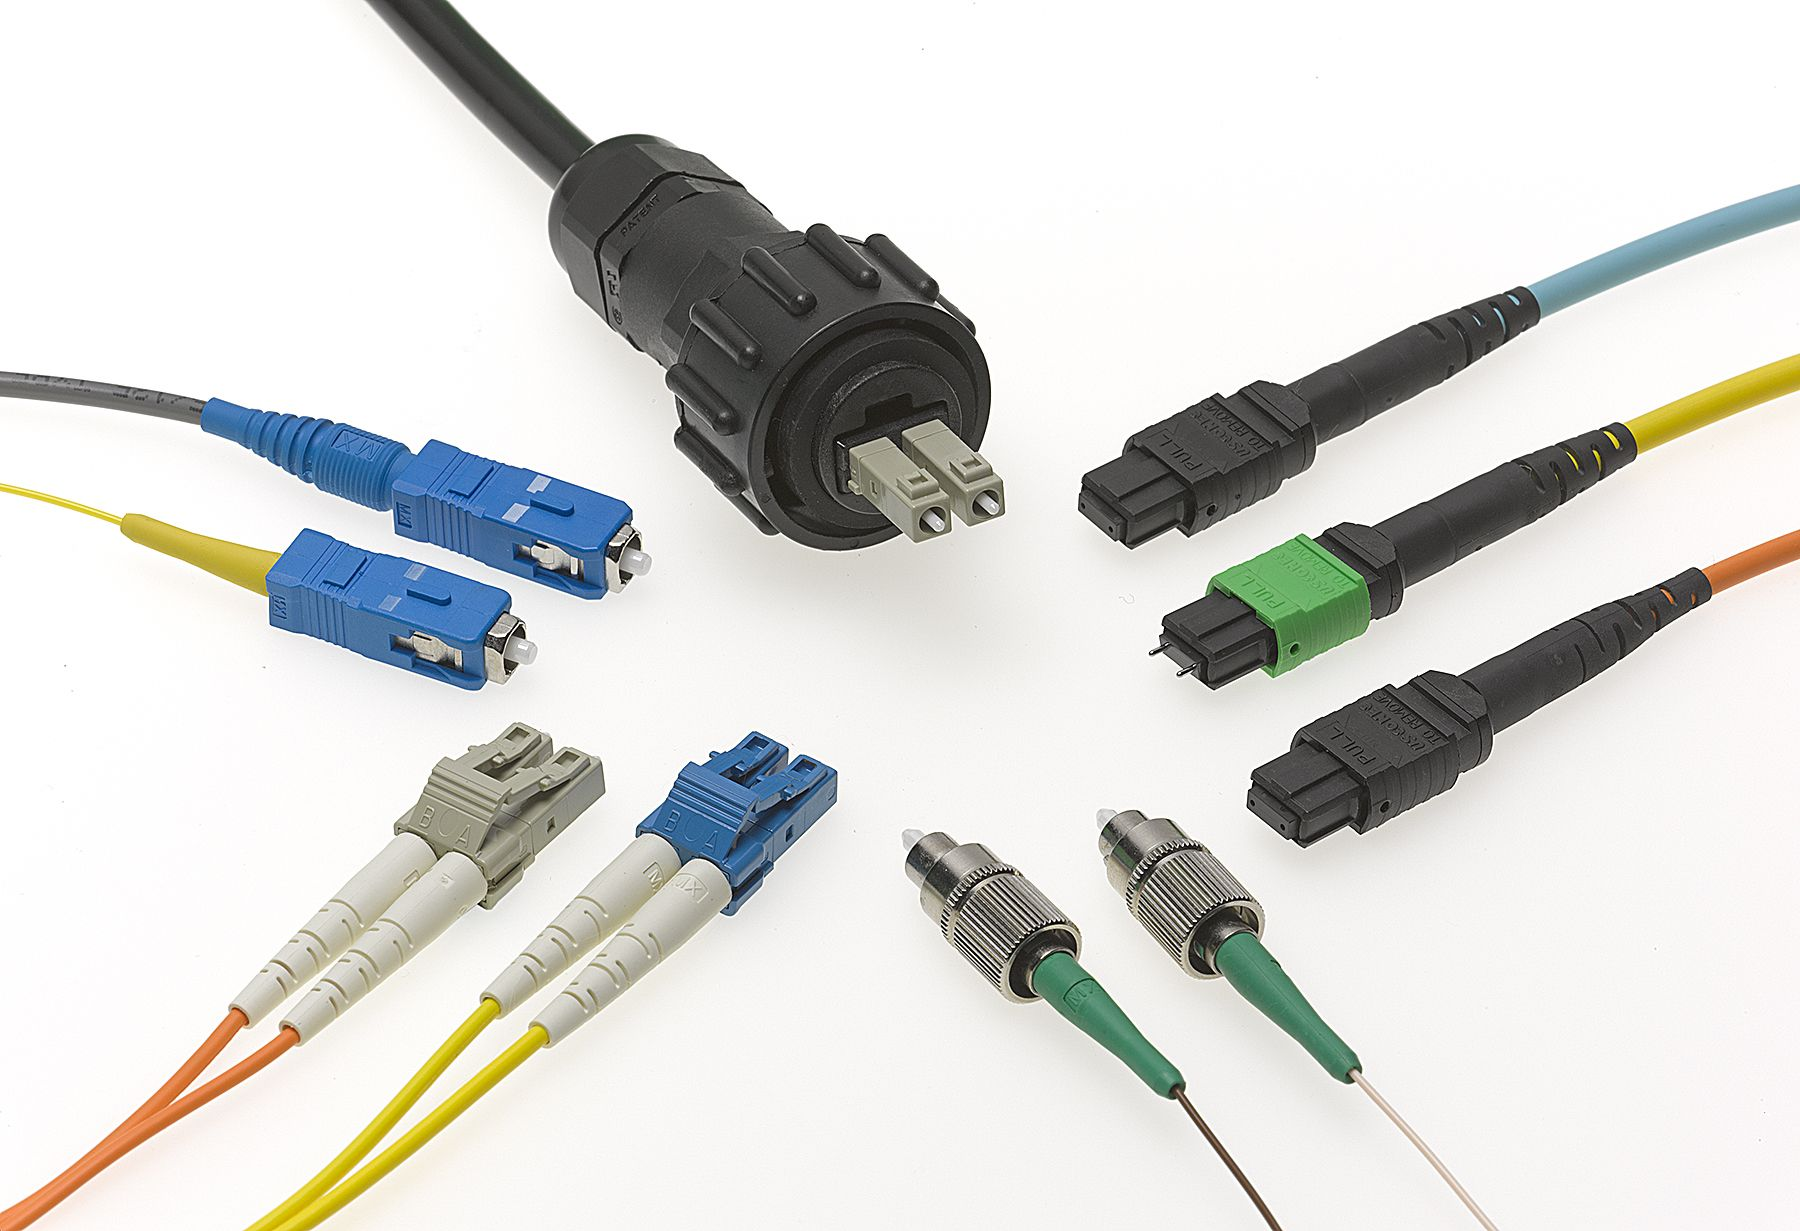 The Fiber Optic Cable Connectors Do Job Of Mating Or Connecting Wiring House For Optics With Optical Fibers Modules And Devices They Are One Key Components In